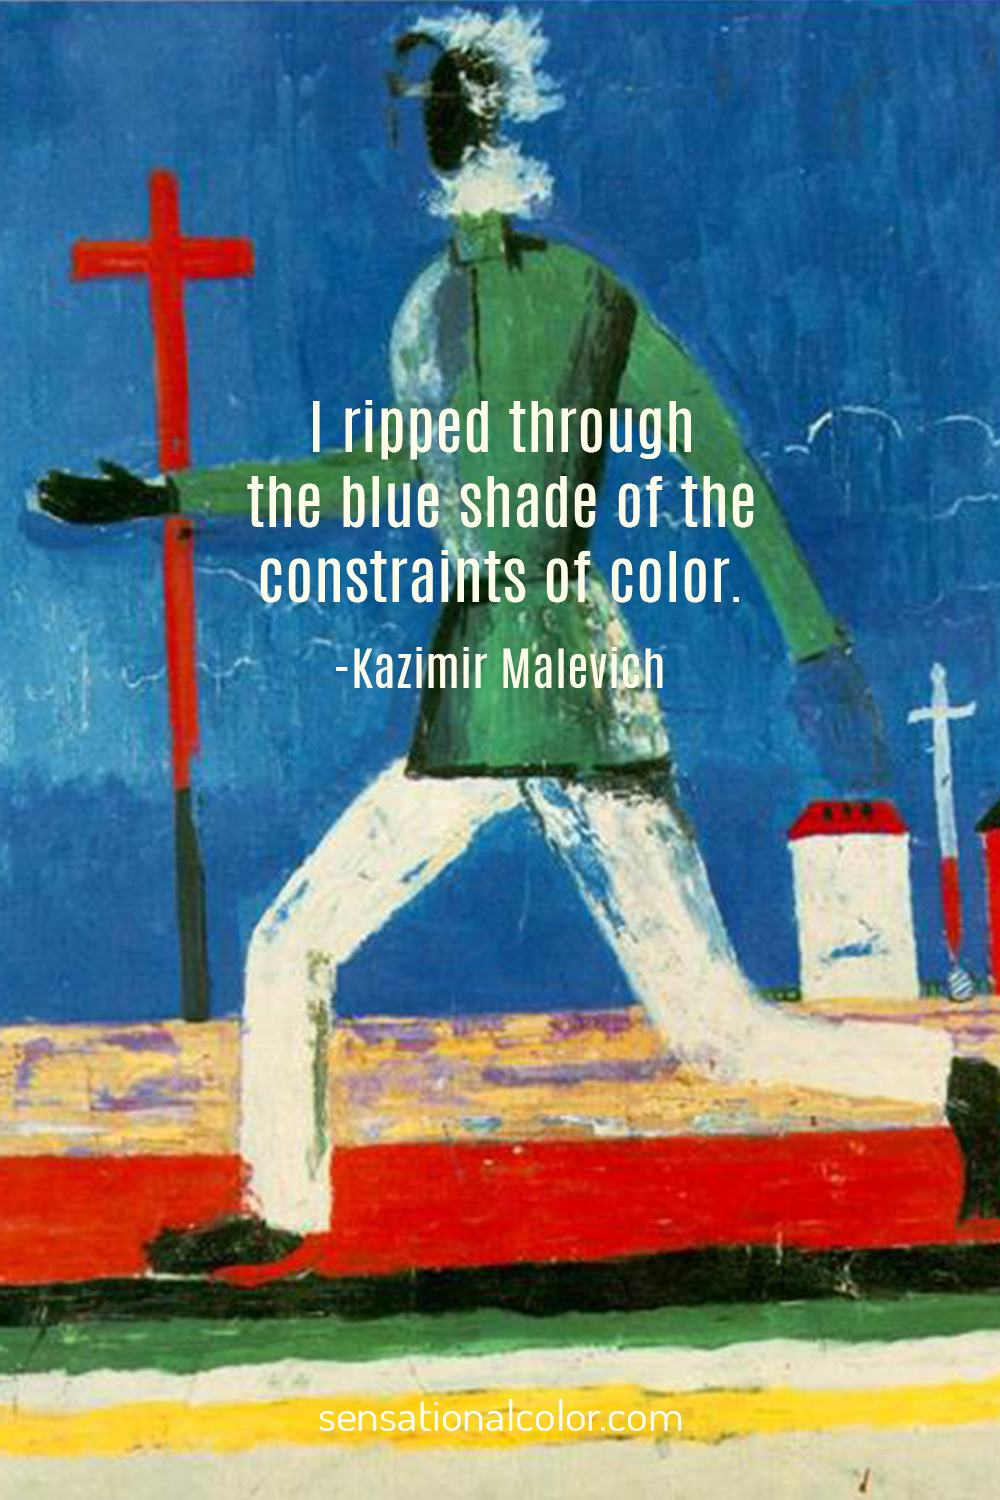 I ripped through the blue shade of the constraints of color. - Kasimir Malevich